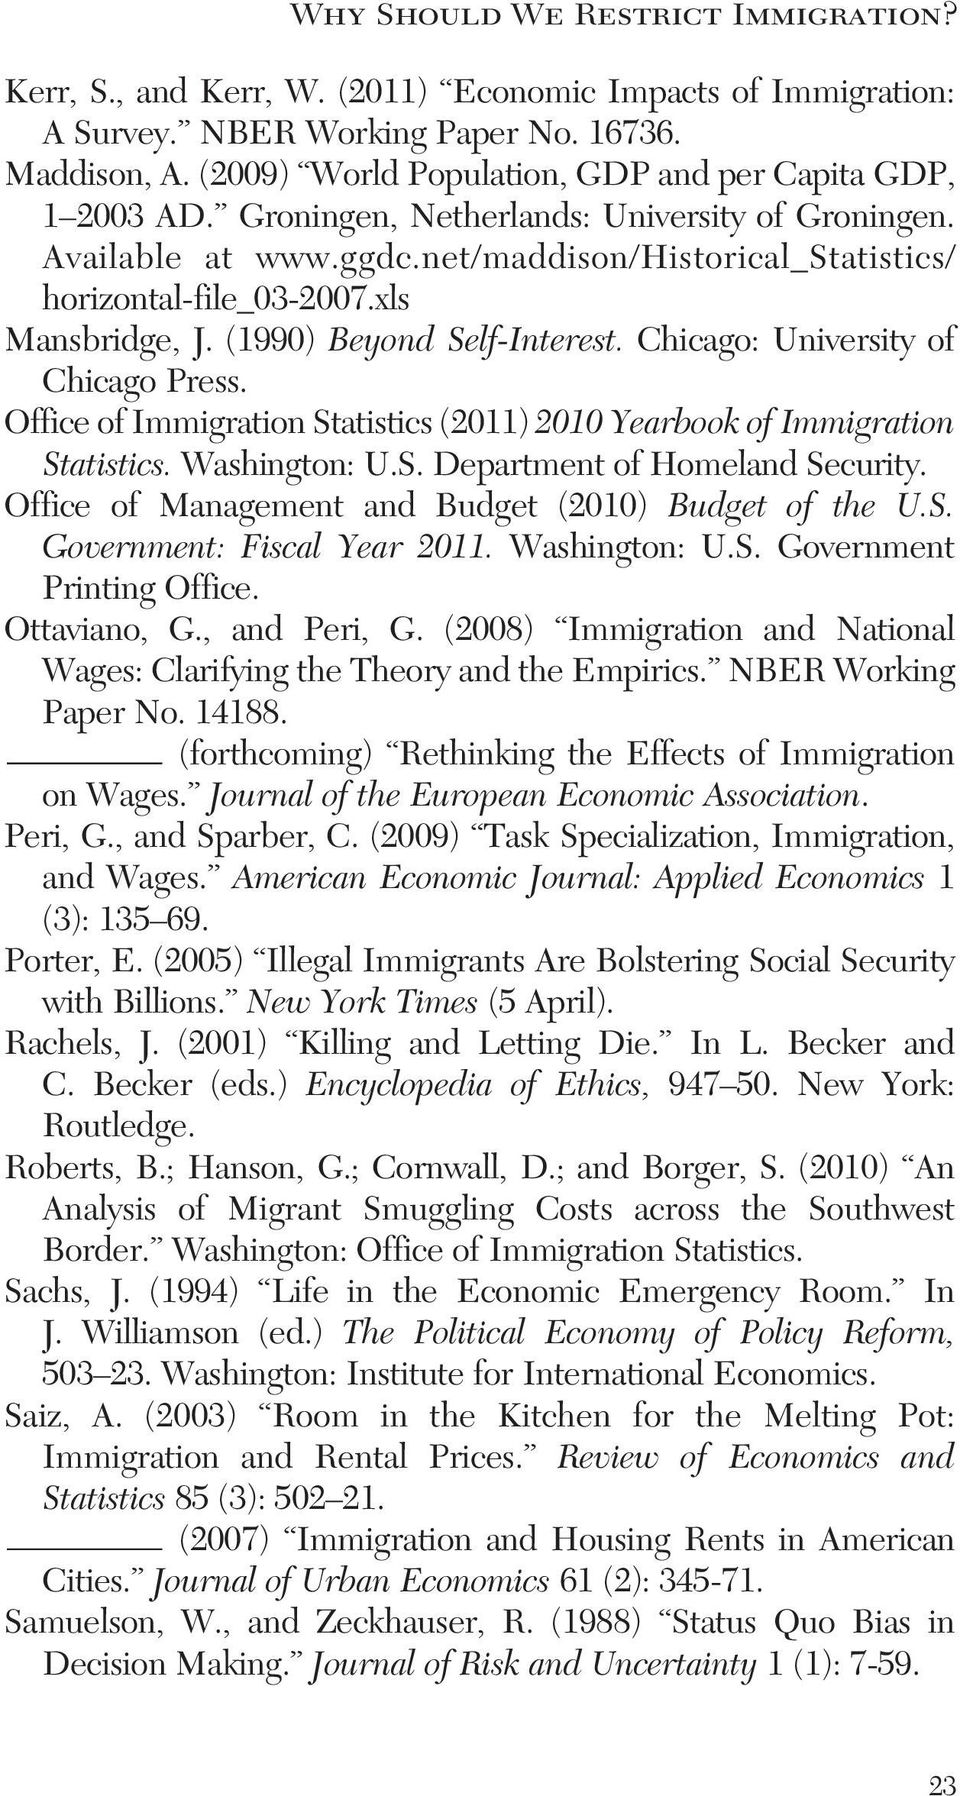 xls Mansbridge, J. (1990) Beyond Self-Interest. Chicago: University of Chicago Press. Office of Immigration Statistics (2011) 2010 Yearbook of Immigration Statistics. Washington: U.S. Department of Homeland Security.